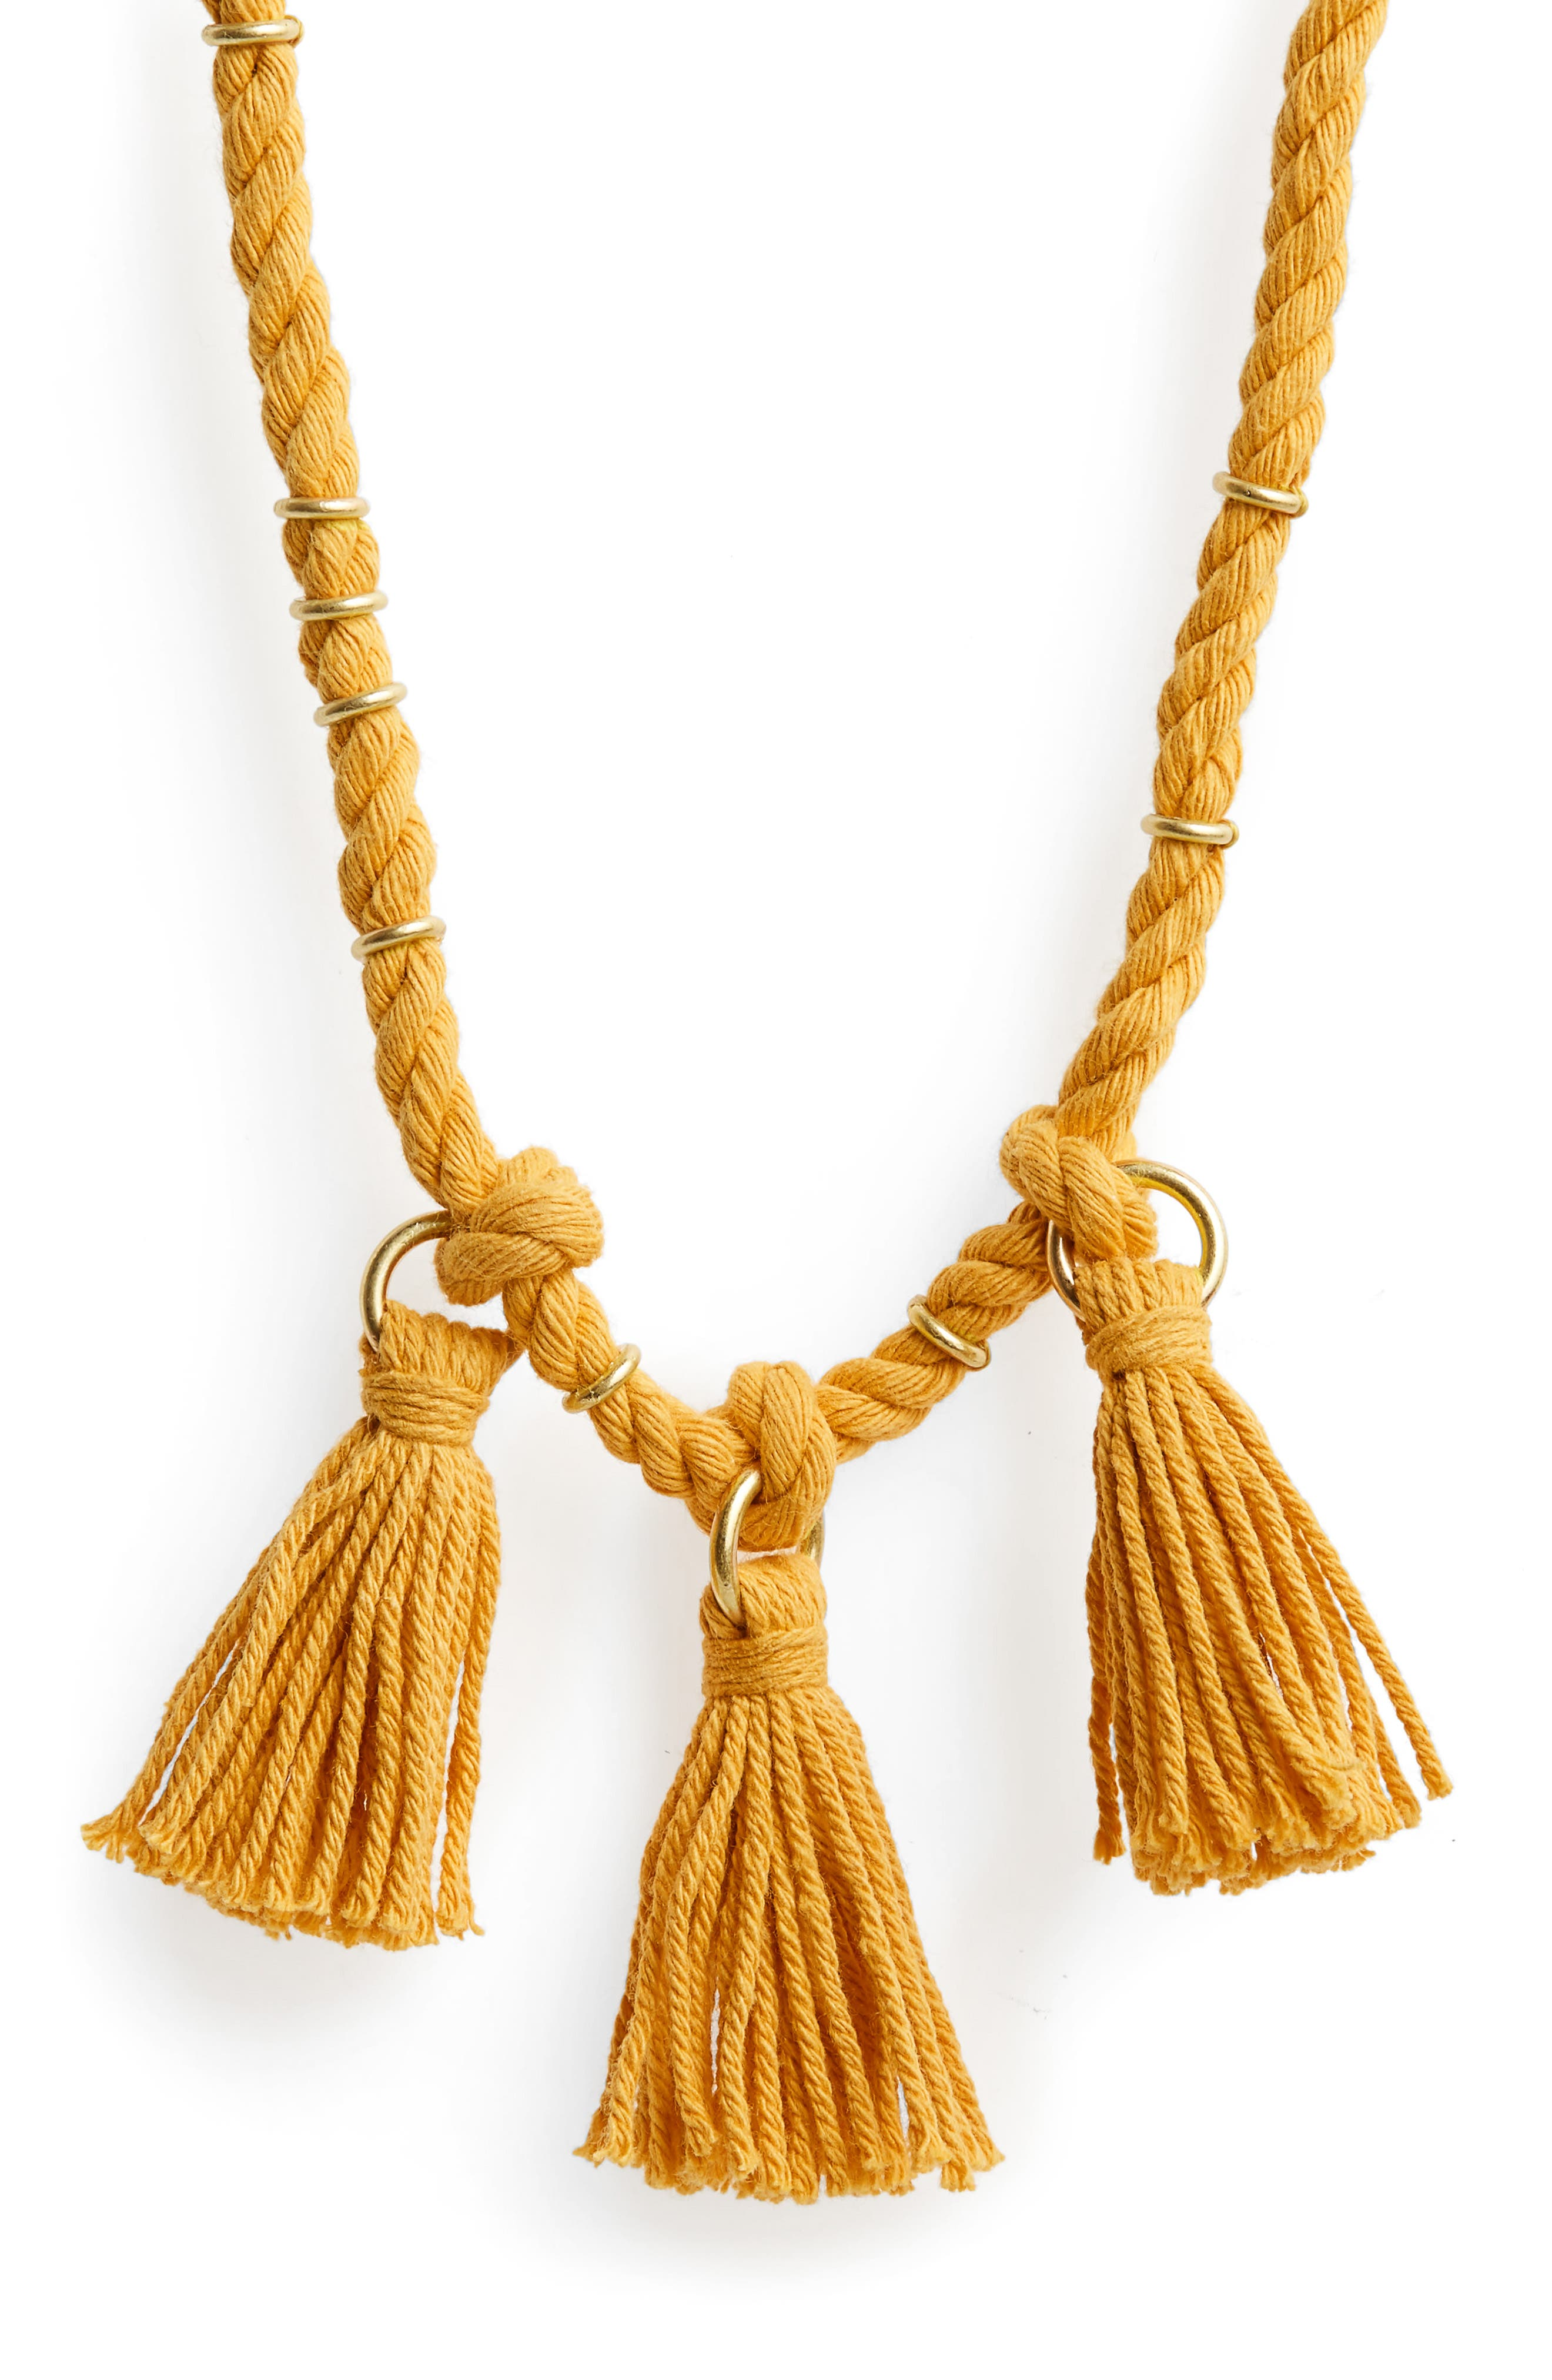 MADEWELL, Rope & Tassel Necklace, Main thumbnail 1, color, 717